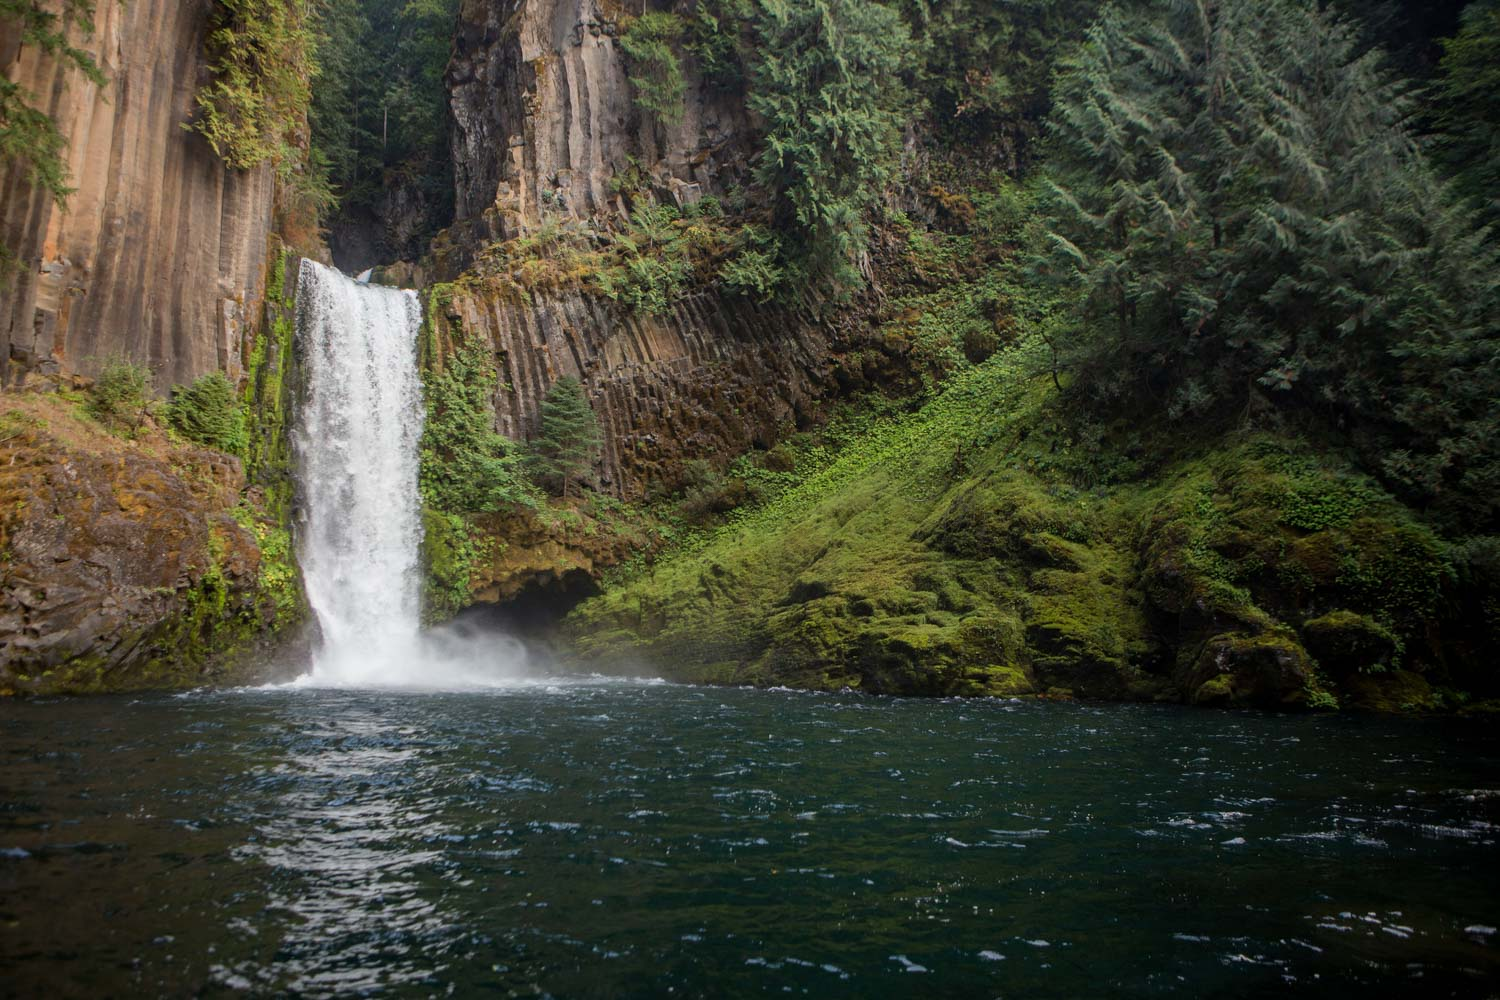 an oregon waterfall drops into a still pool from a steep rock face in a forest